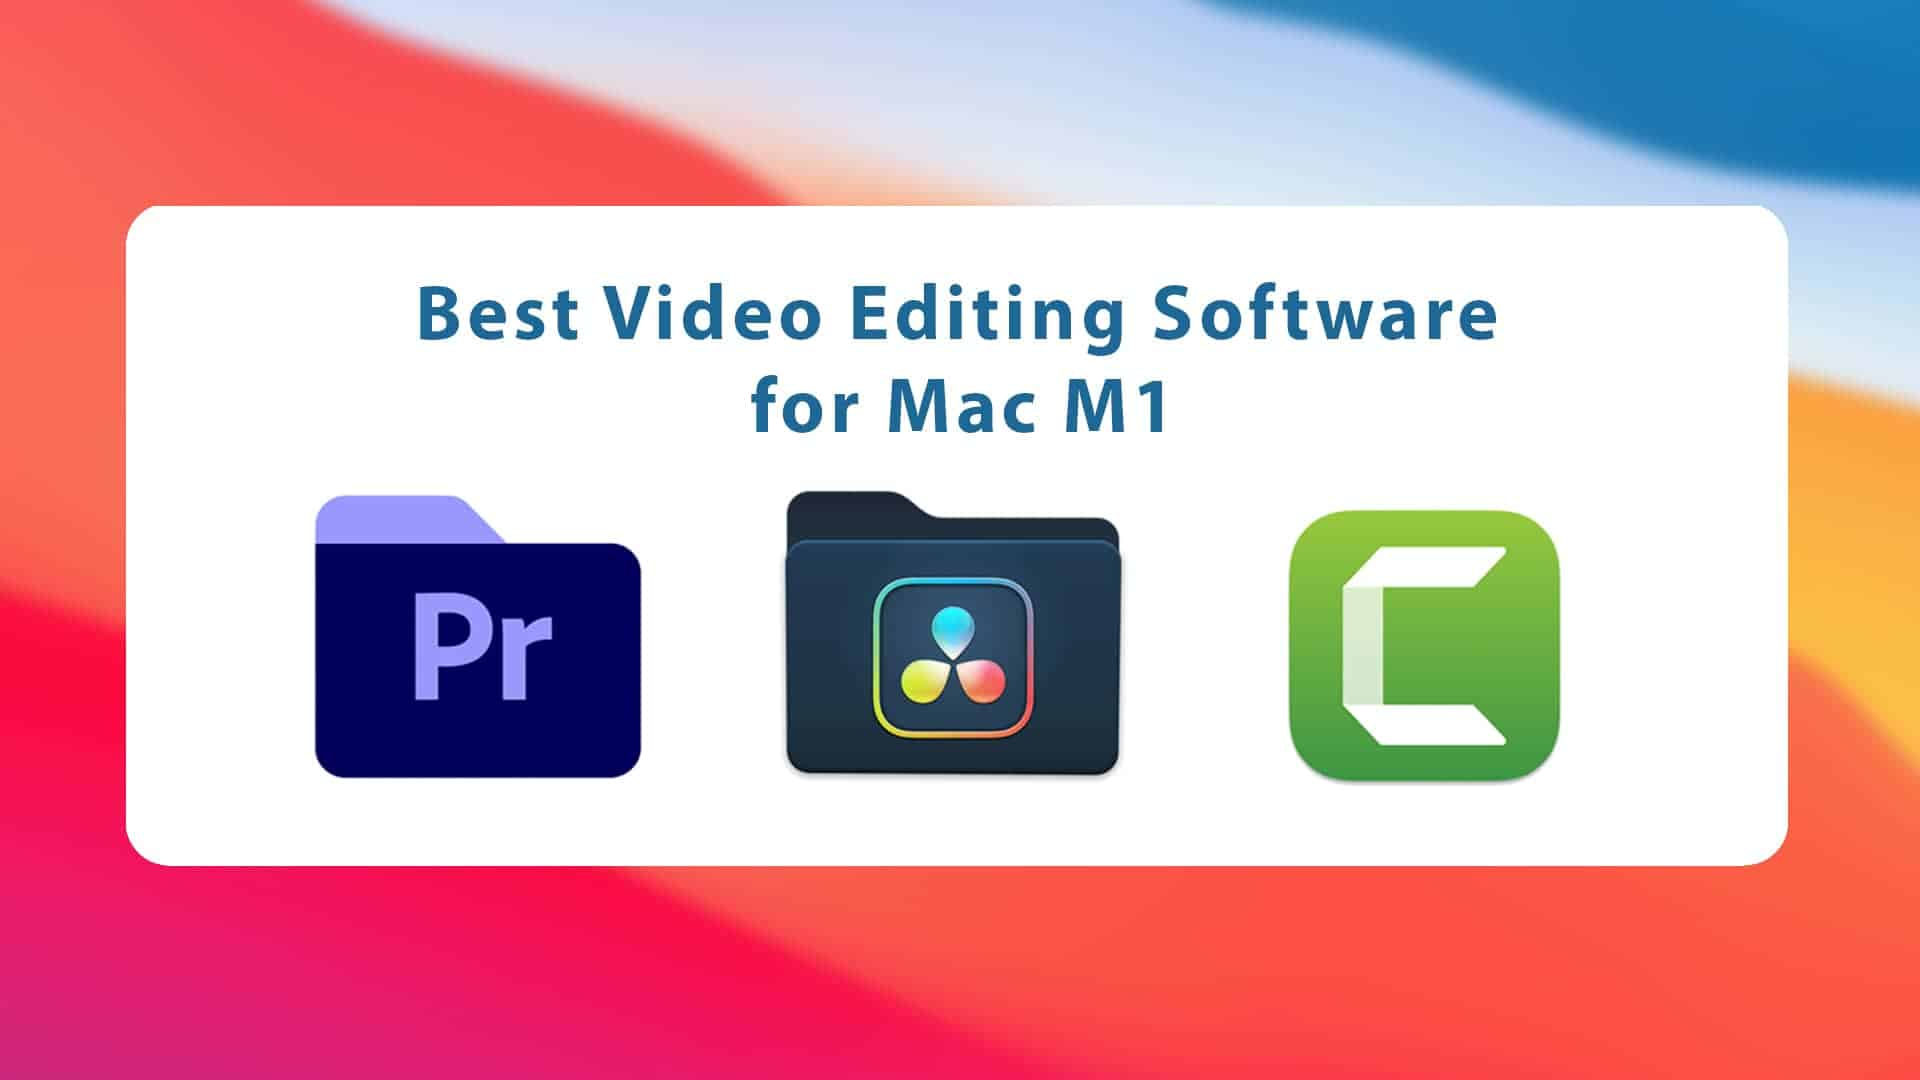 Best Video Editing Software for Mac M1